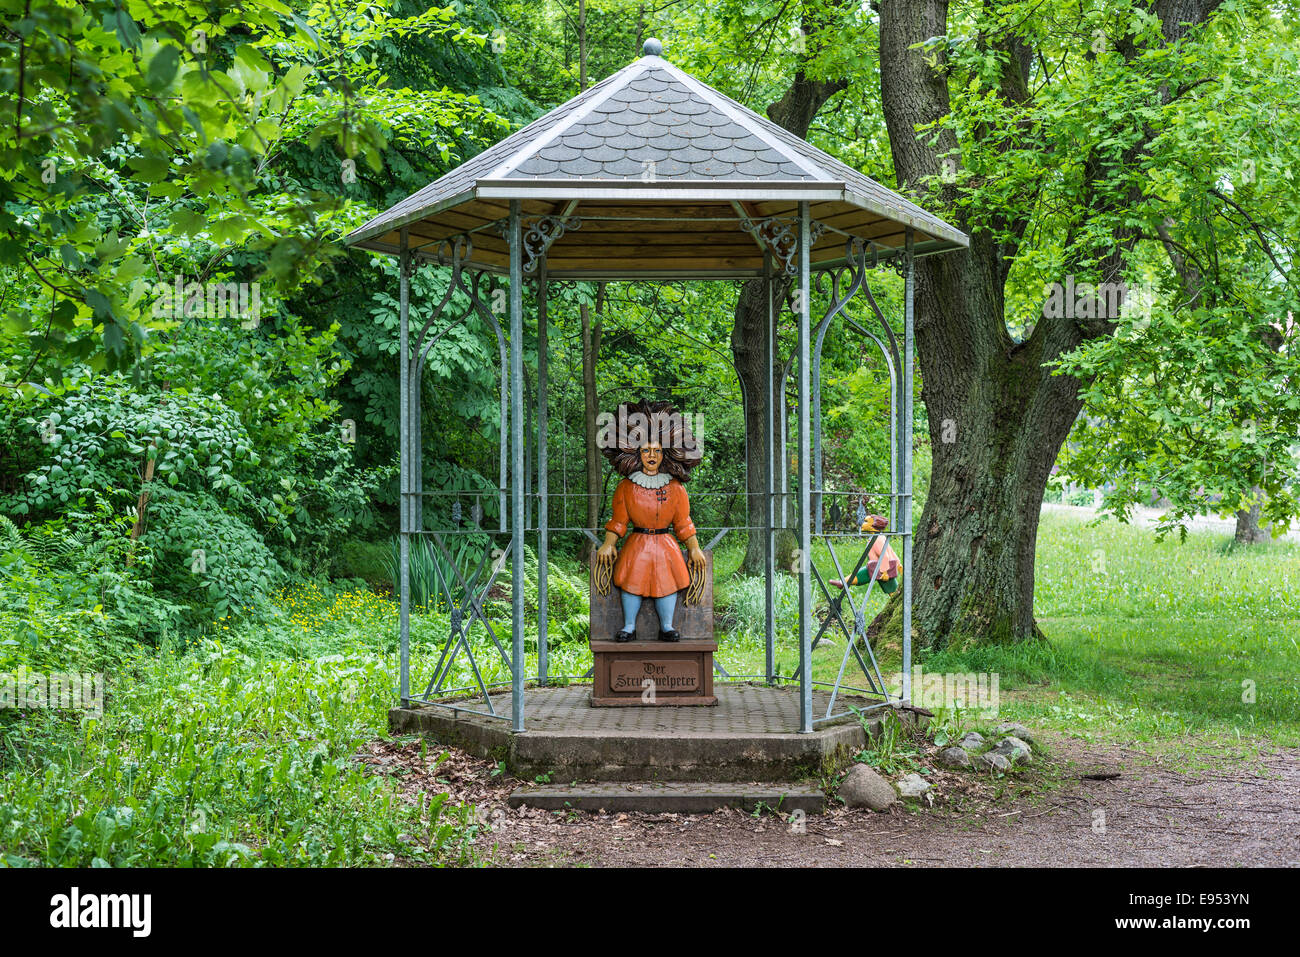 Gazebo with the Title character from the 'Struwwelpeter' children's book by Heinrich Hoffmann, carved - Stock Image